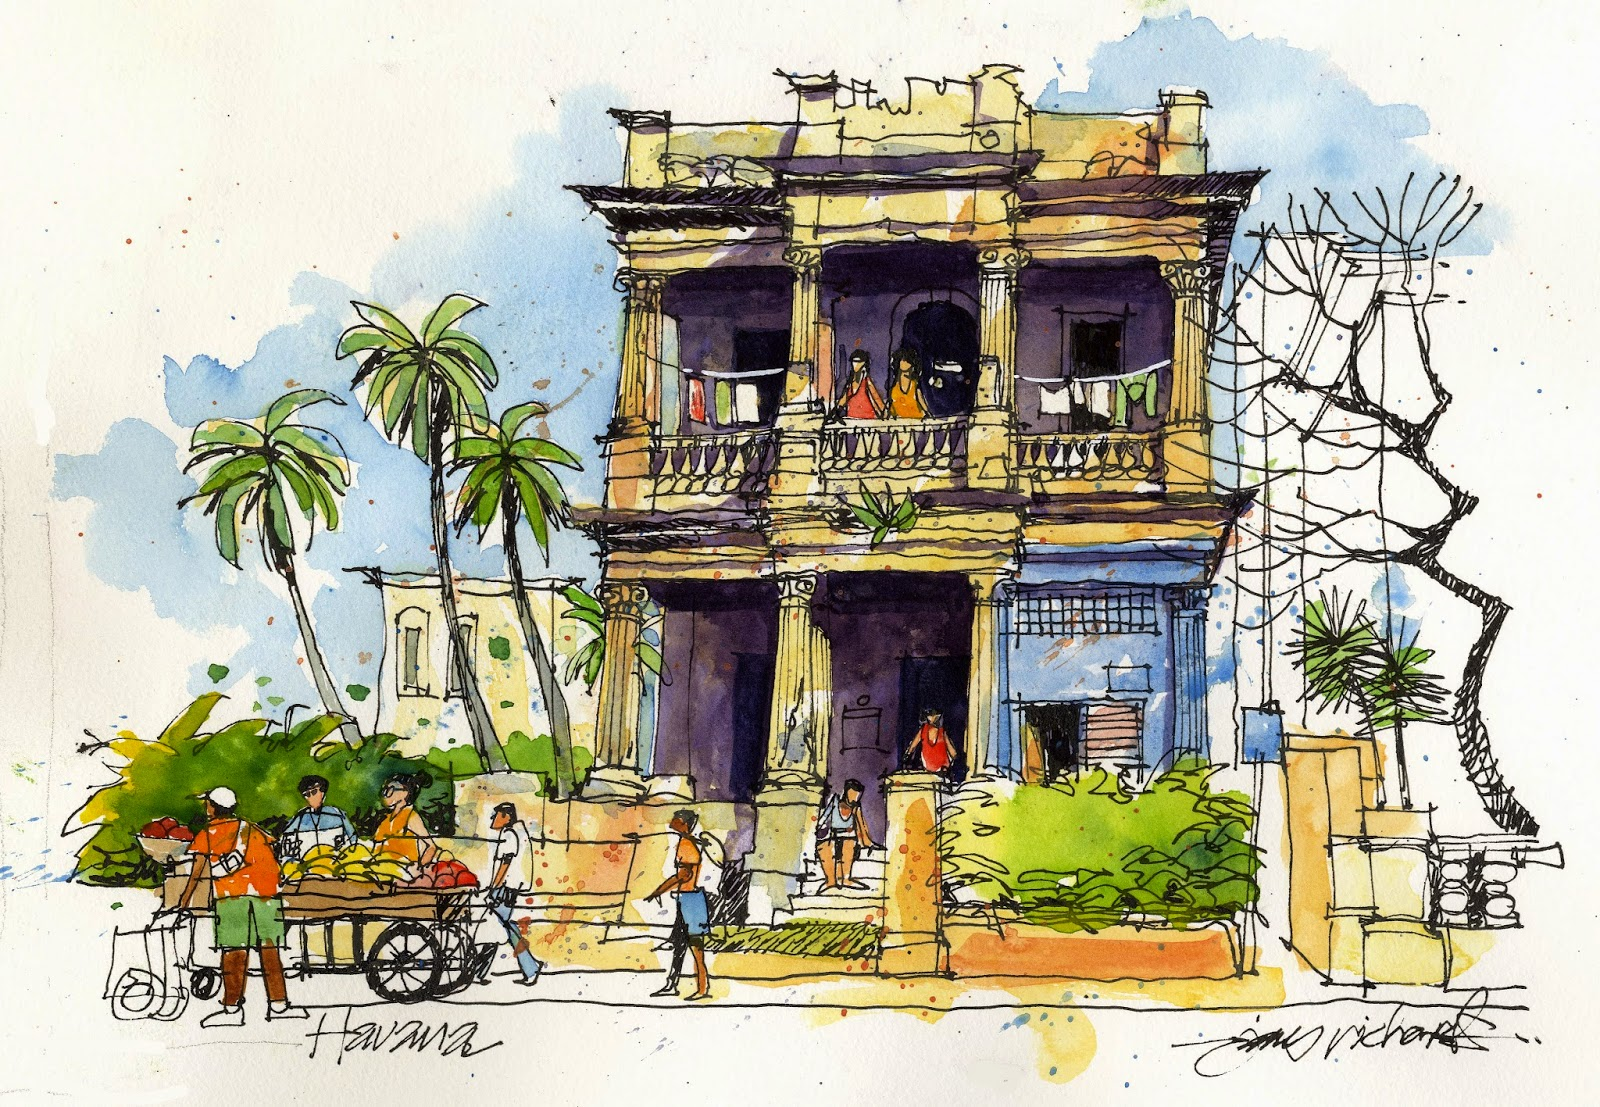 Sketched by JR from Texas, a building along one of many lovely Vedado avenidas © James Richards •±• Hotel Nacional in its very turistica neighbourhood © sogestour